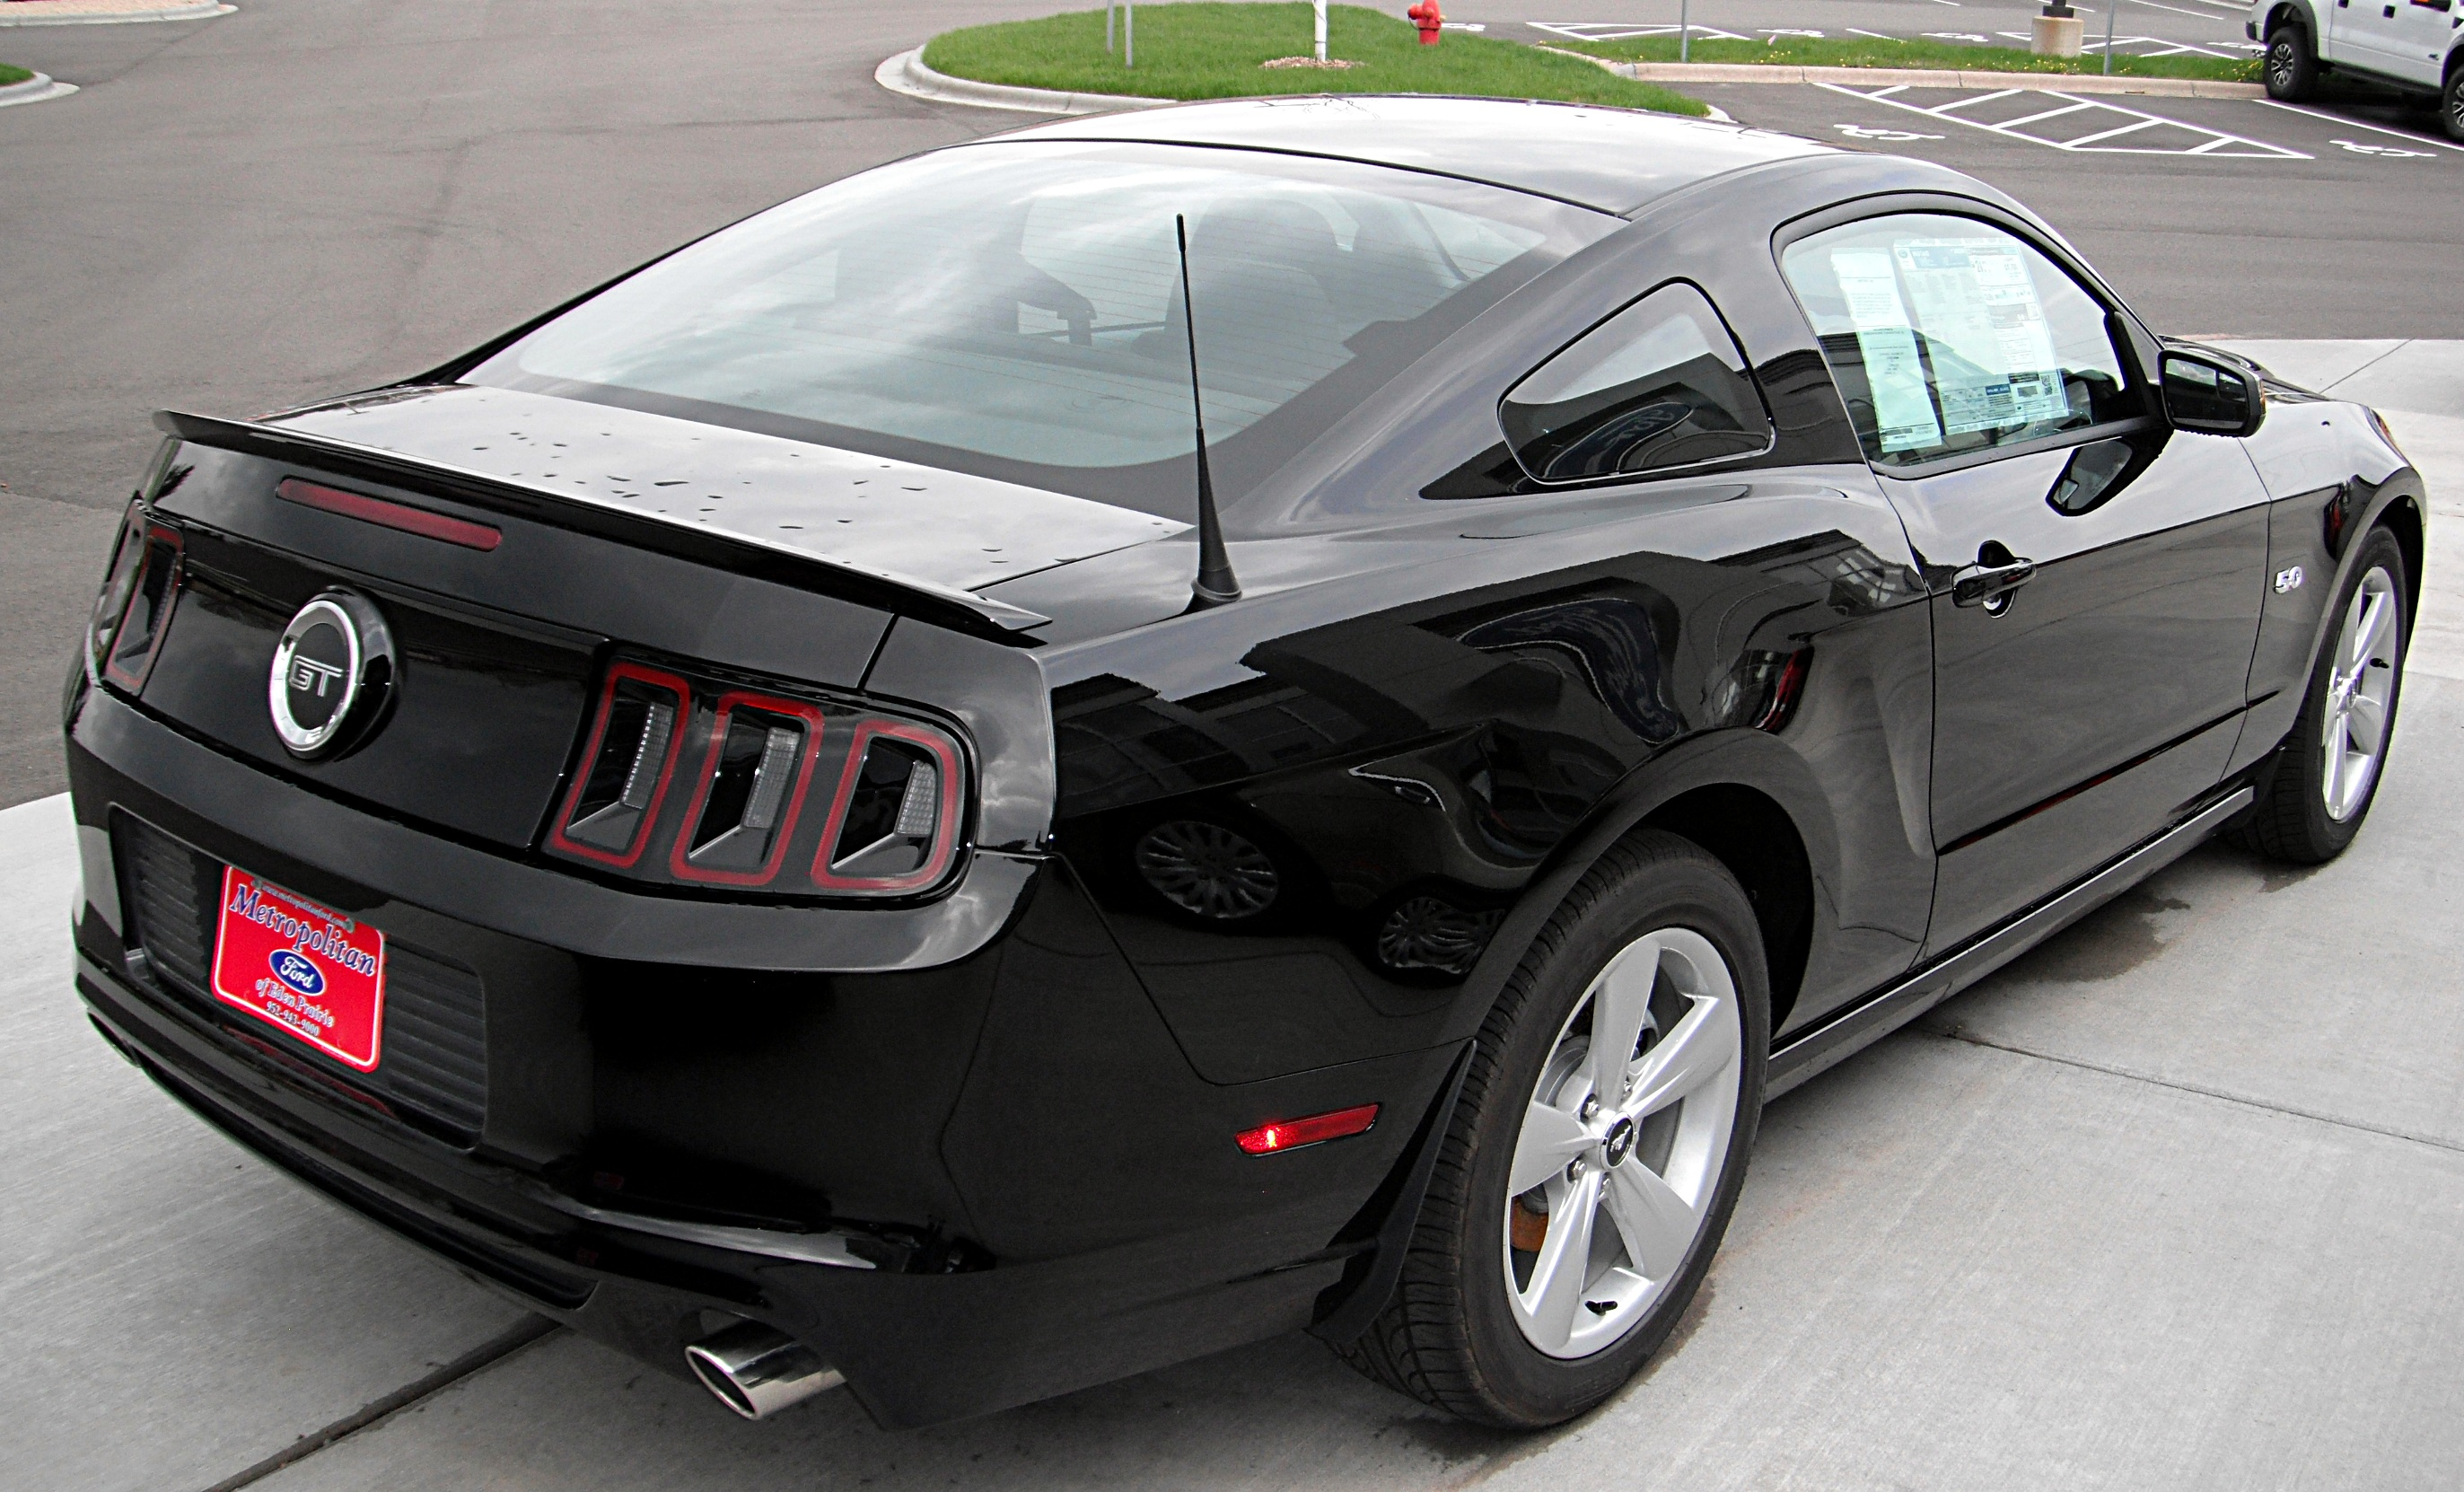 Description 2013 Ford Mustang GT (rear view).jpg